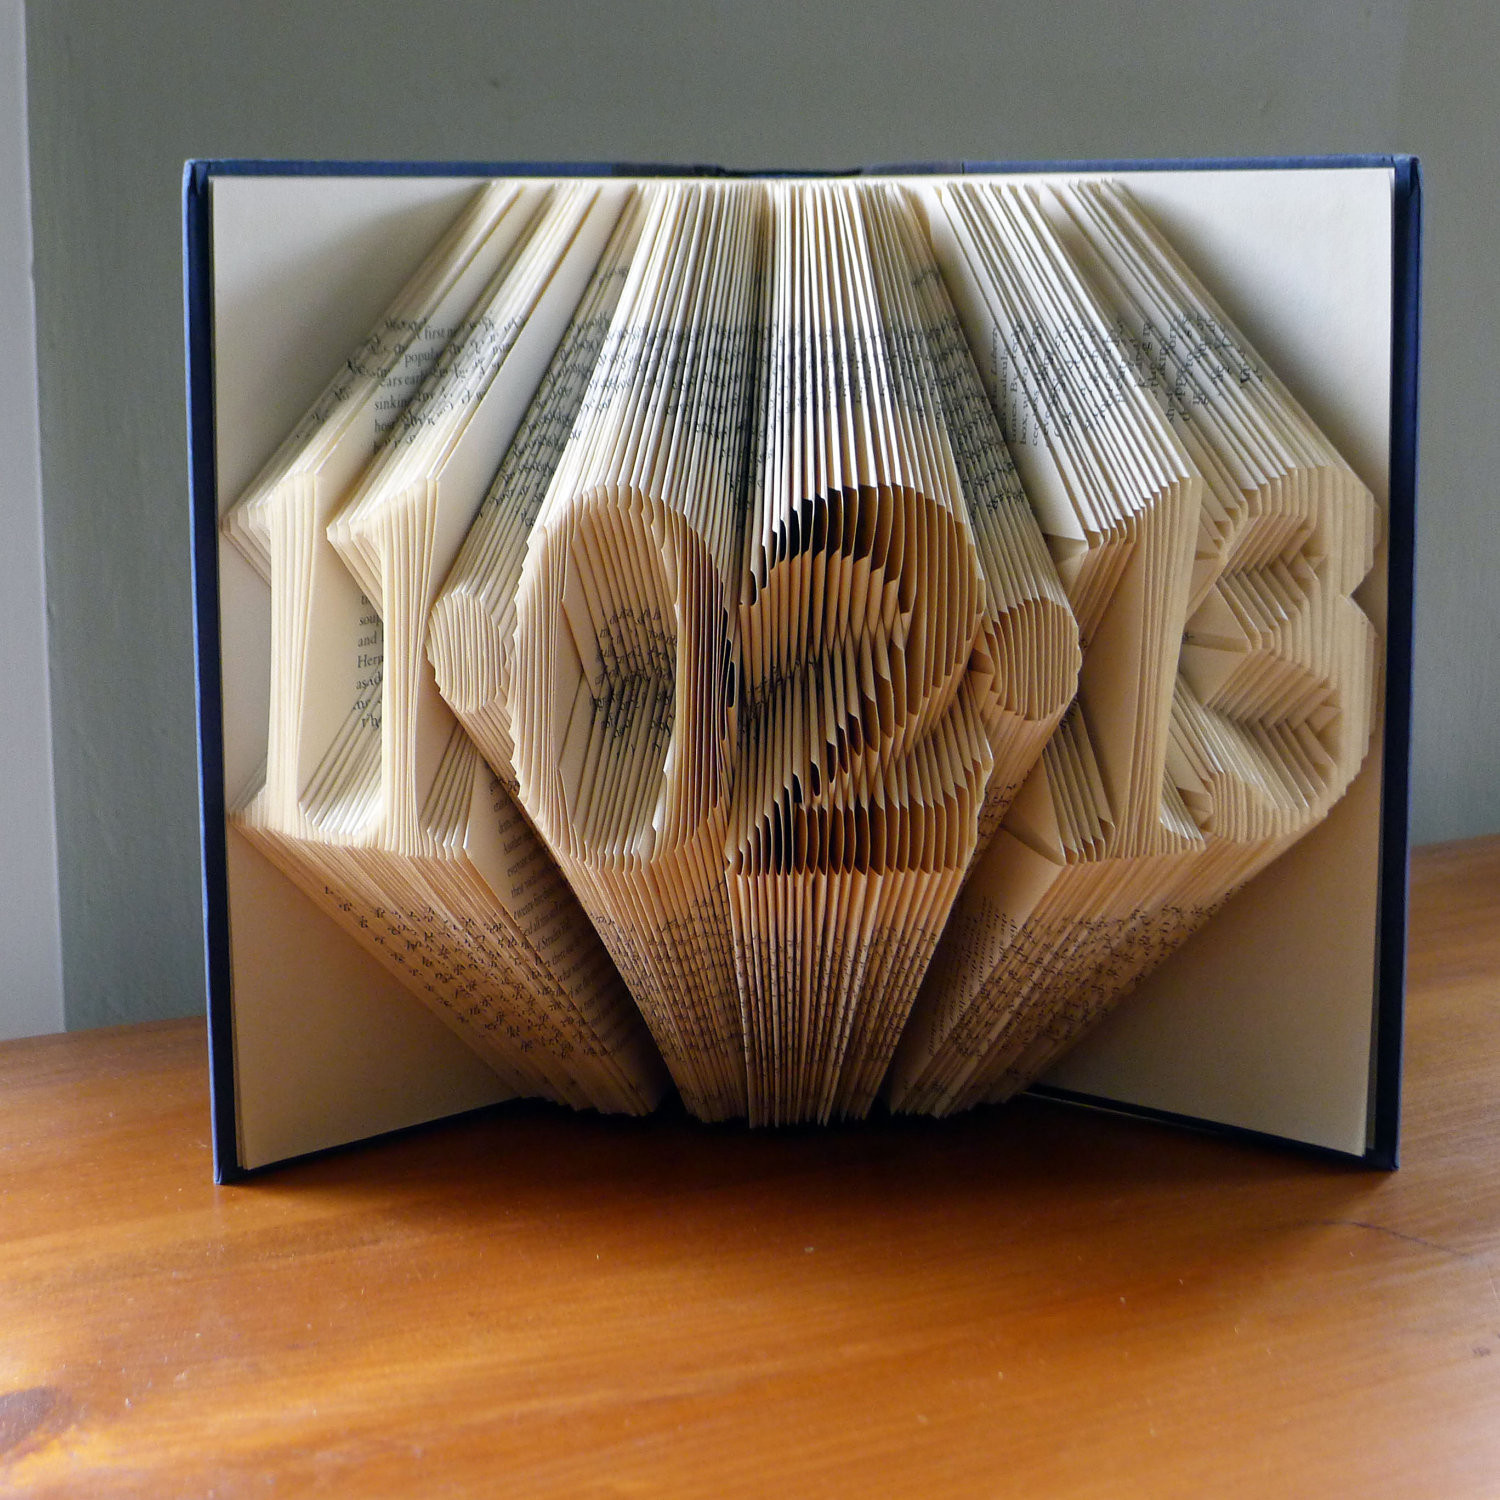 Best ideas about Paper Anniversary Gift Ideas For Him . Save or Pin Folded Book Art Paper Anniversary Gift for Him by Now.